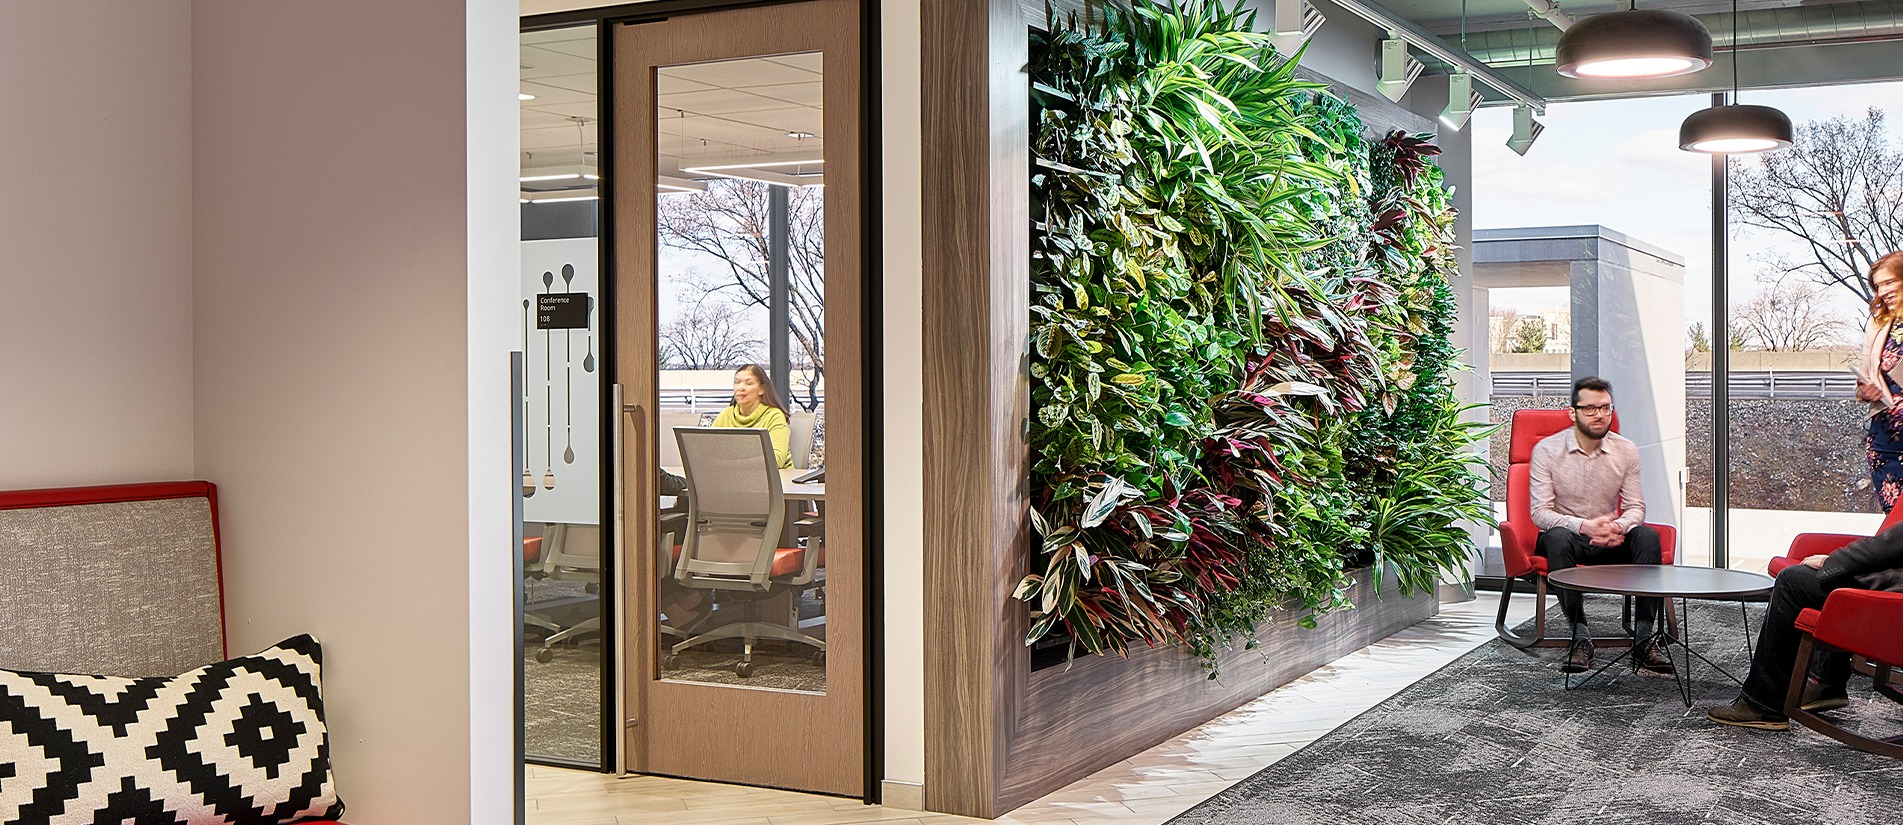 Green wall separates a conference and waiting room designed with One LP glass door panel